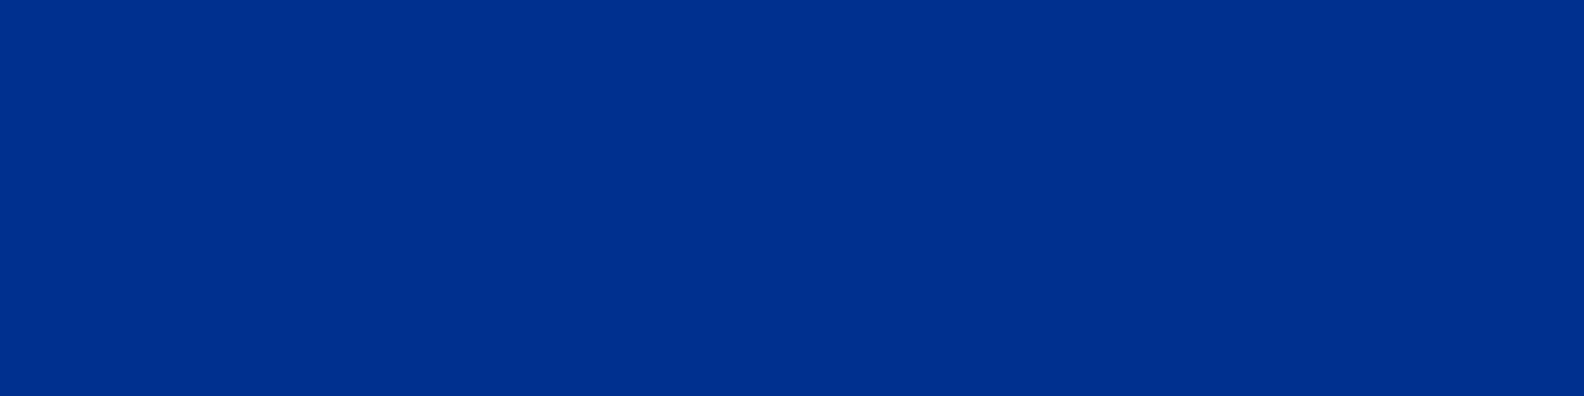 1584x396 Air Force Dark Blue Solid Color Background